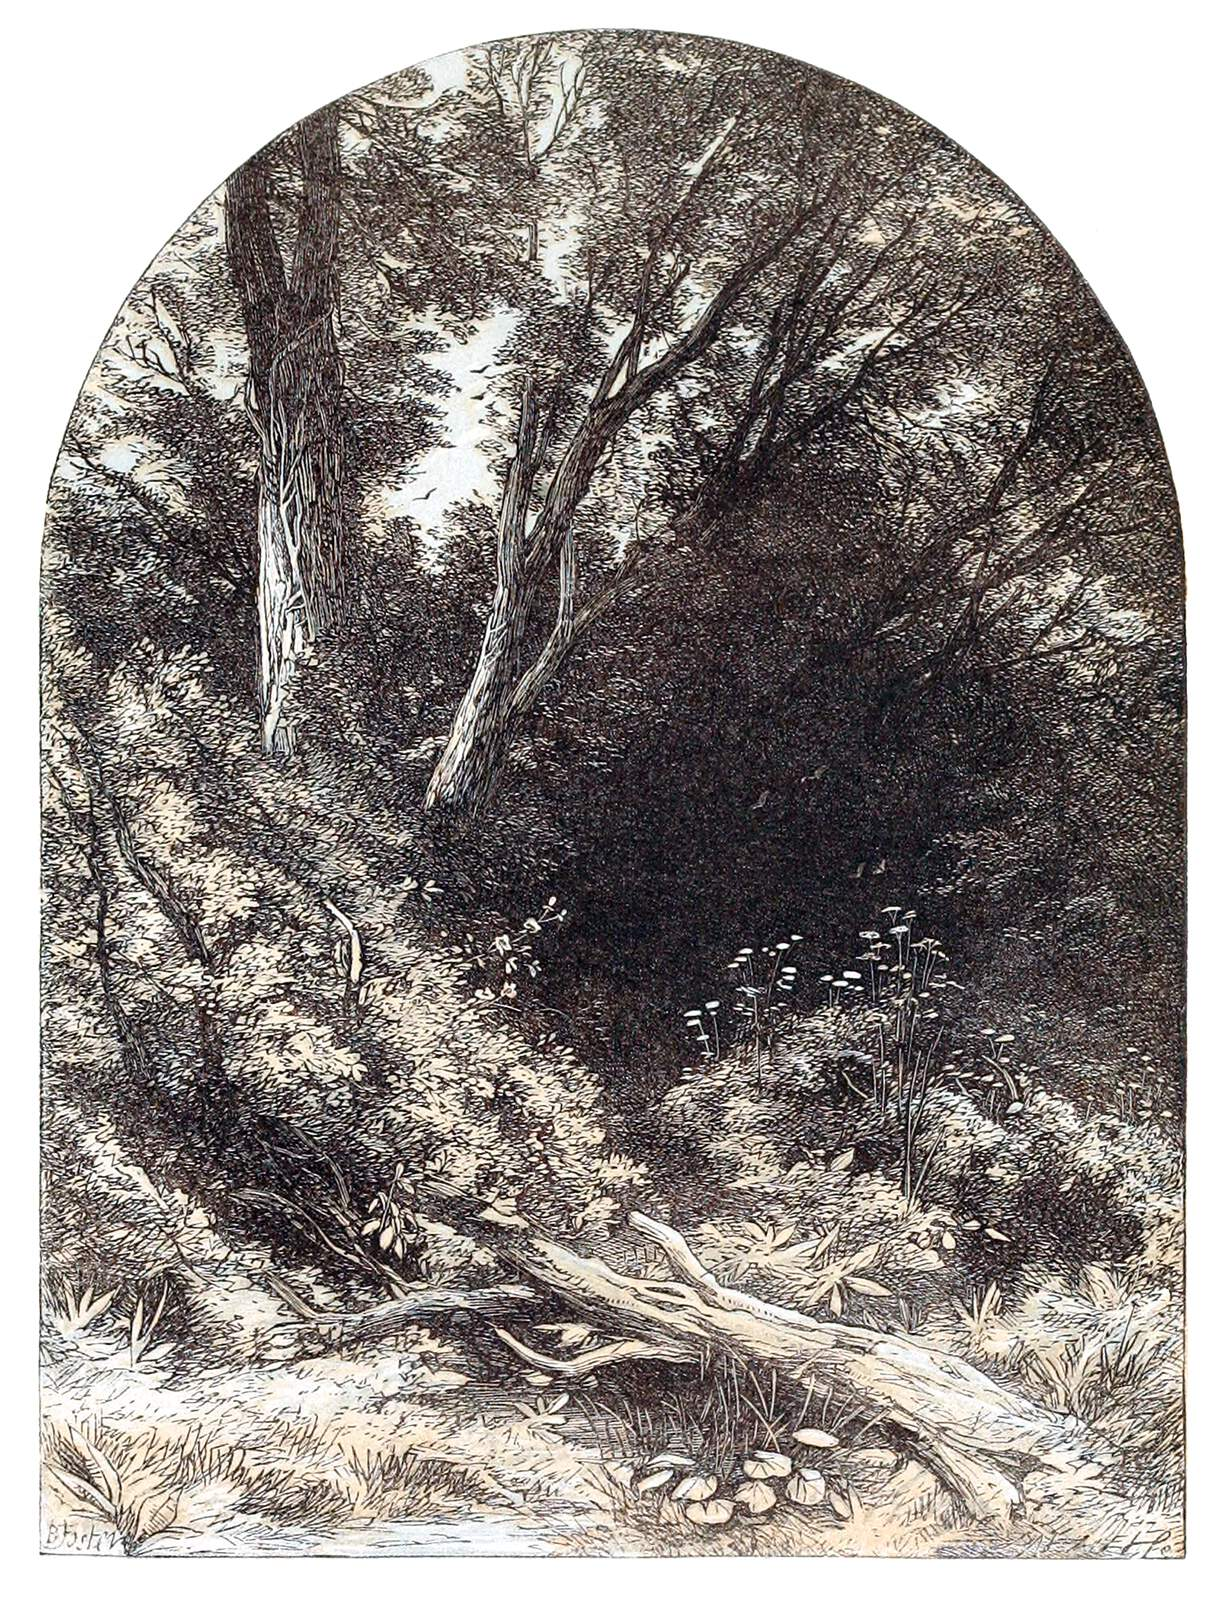 Etching of densely-packed woods displayed in an arch, a portal to elsewhere.